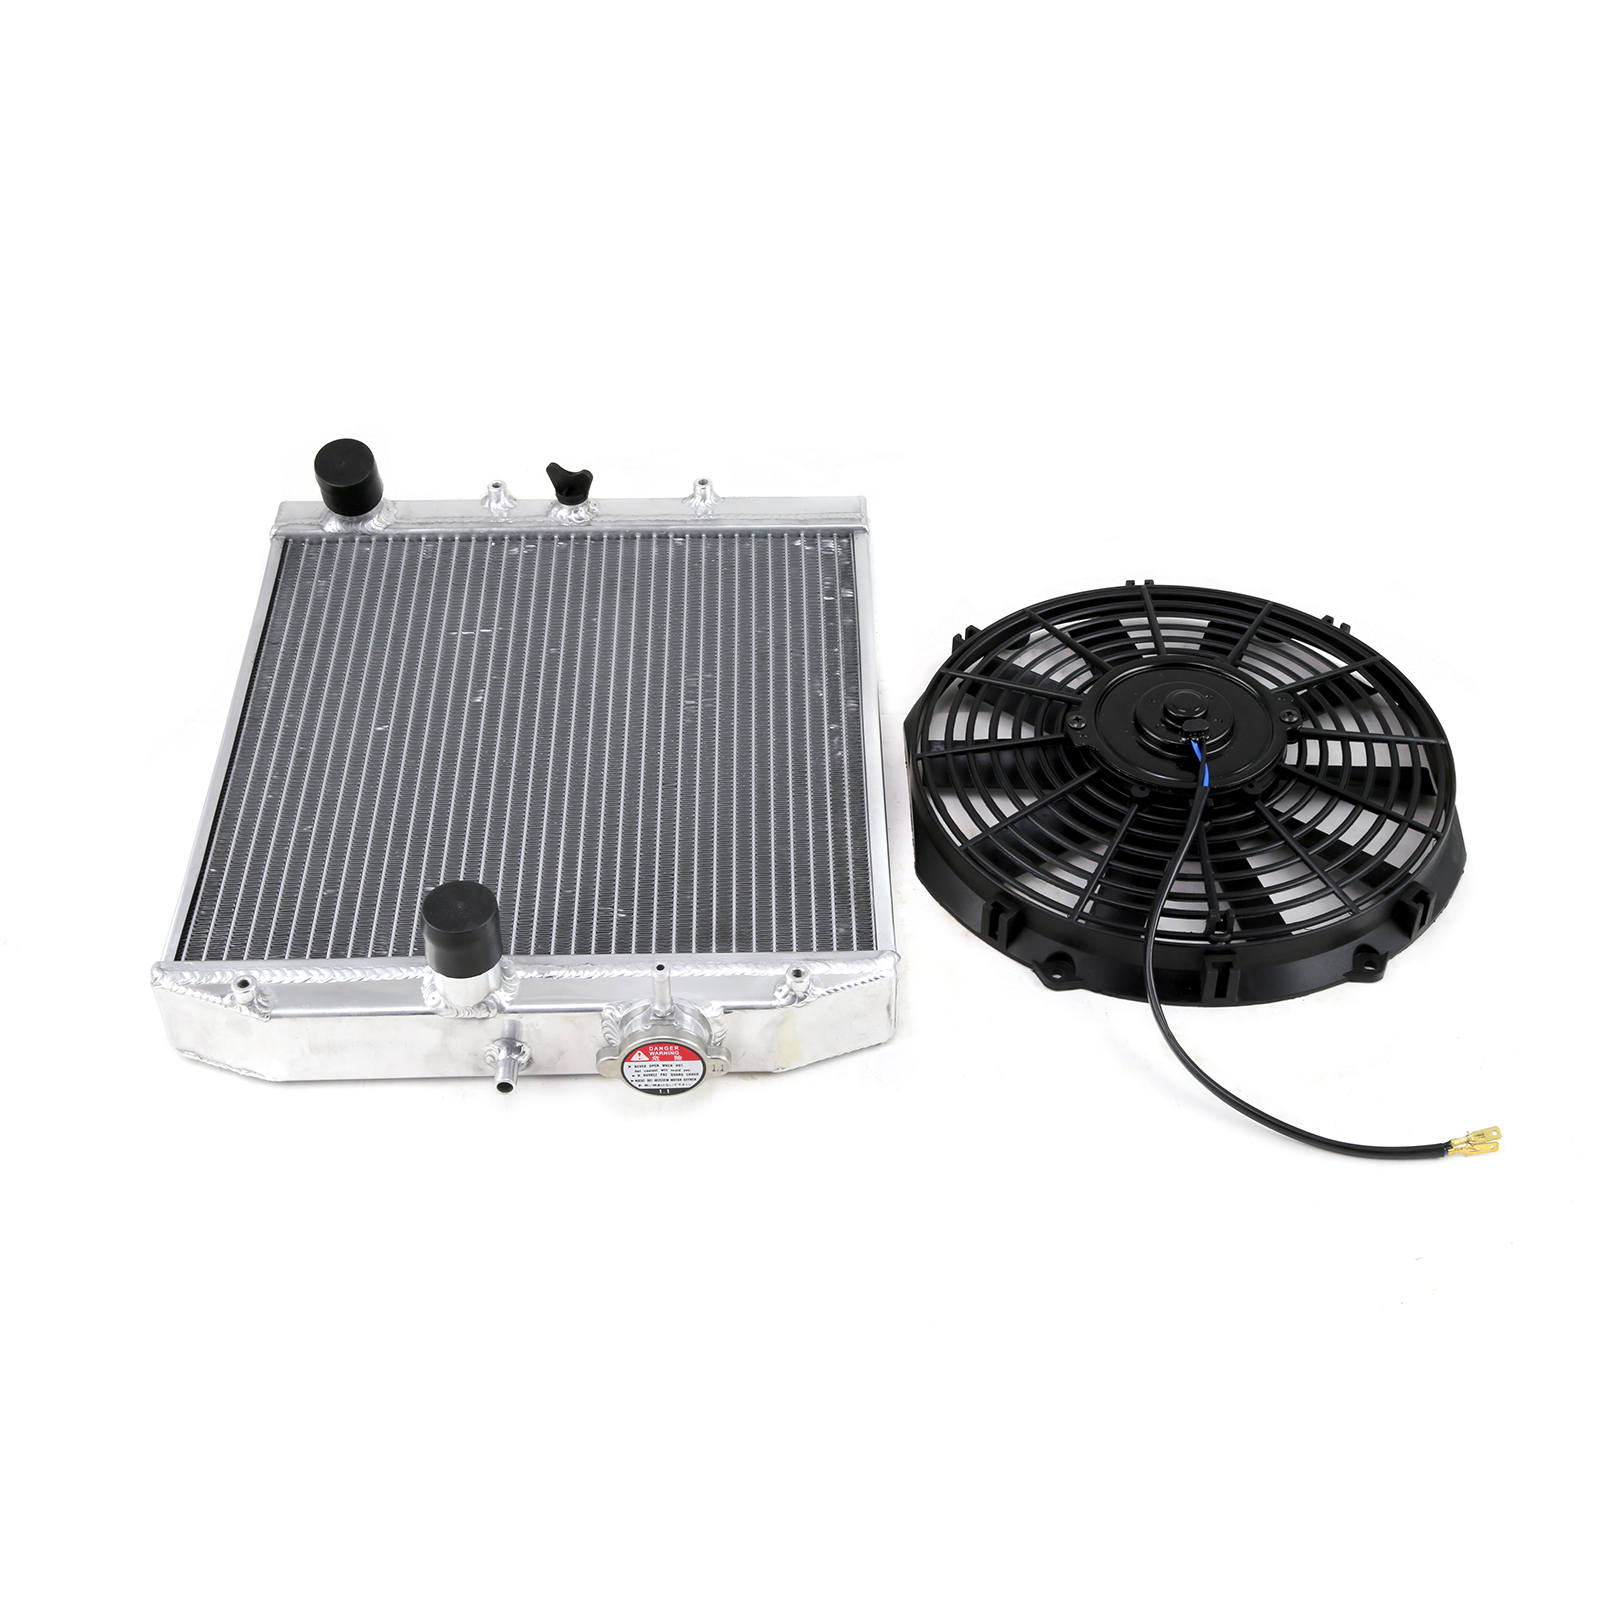 Civic/Del Sol/Integra Dc 2-Row Radiator + 12 Electric Fan